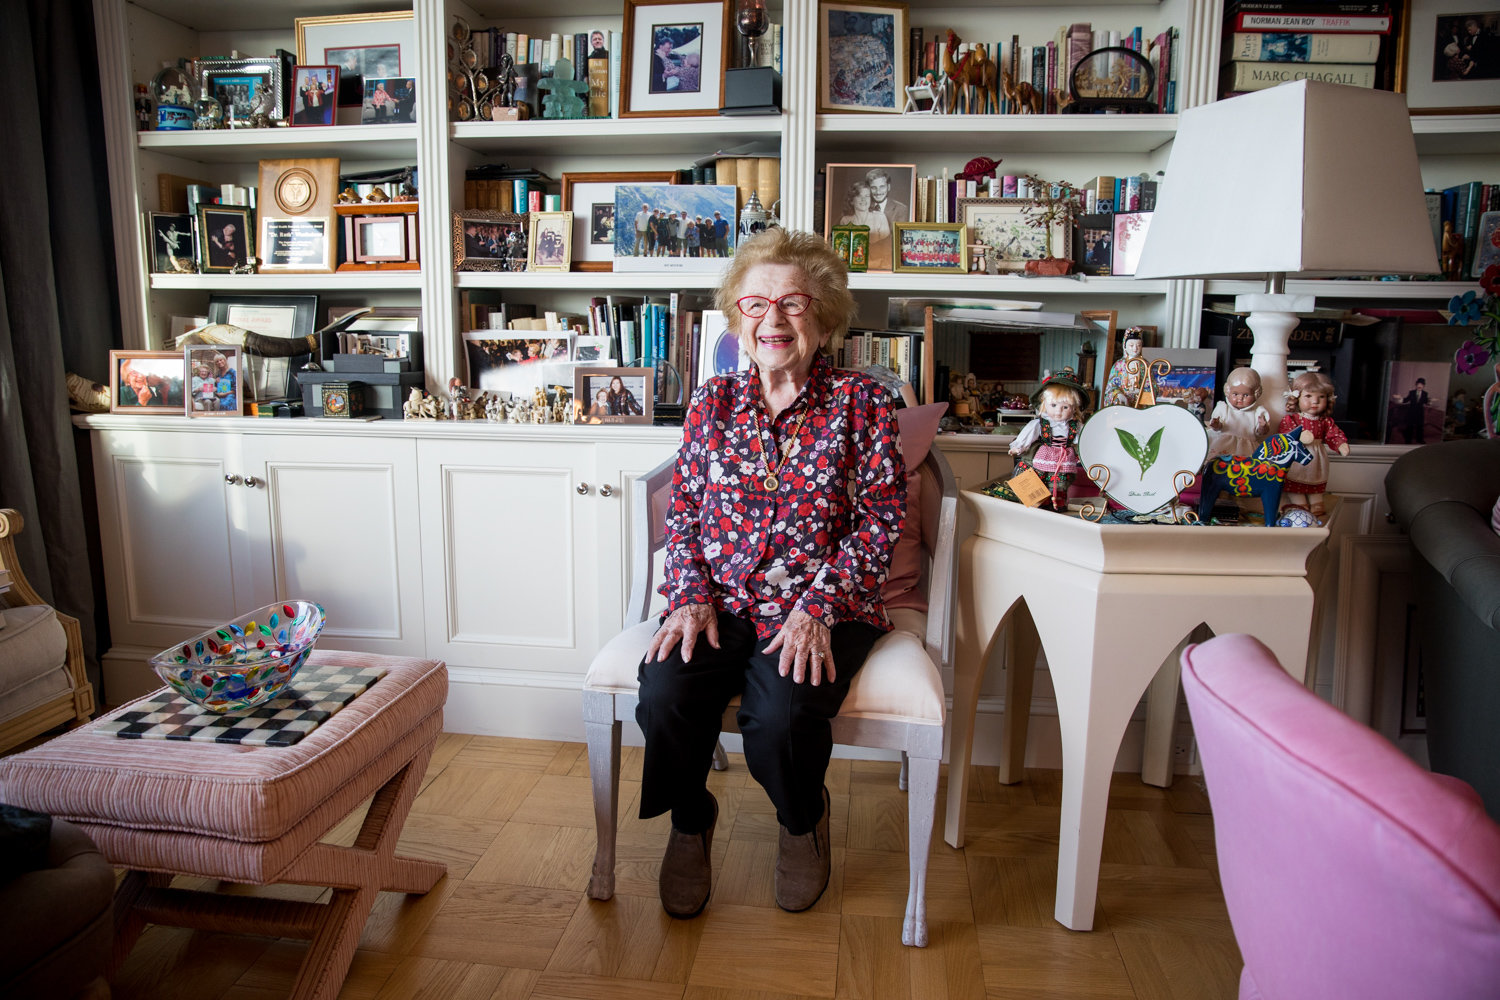 Dr. Ruth K. Westheimer has had a long life and career, but at 91, she has no intention of stopping, or even slowing down. American Associates Ben-Gurion University of the Negev in Israel will award the famed sex therapist an honorary doctorate in May, and unveil a new scholarship she is endowing in her name.